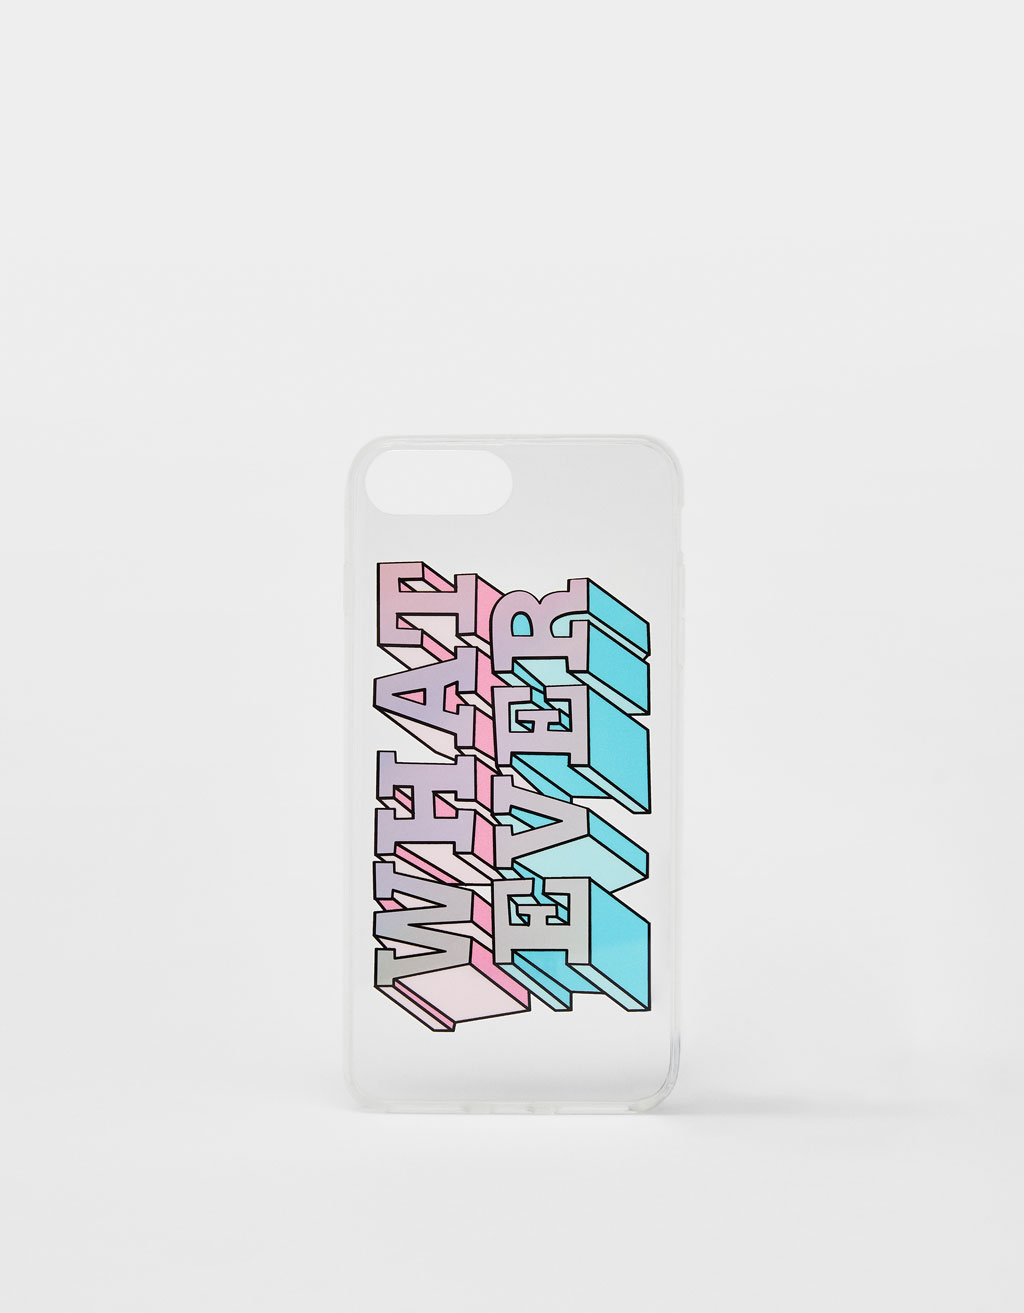 Hoesje What ever voor iPhone 6 plus / 7 plus / 8 plus